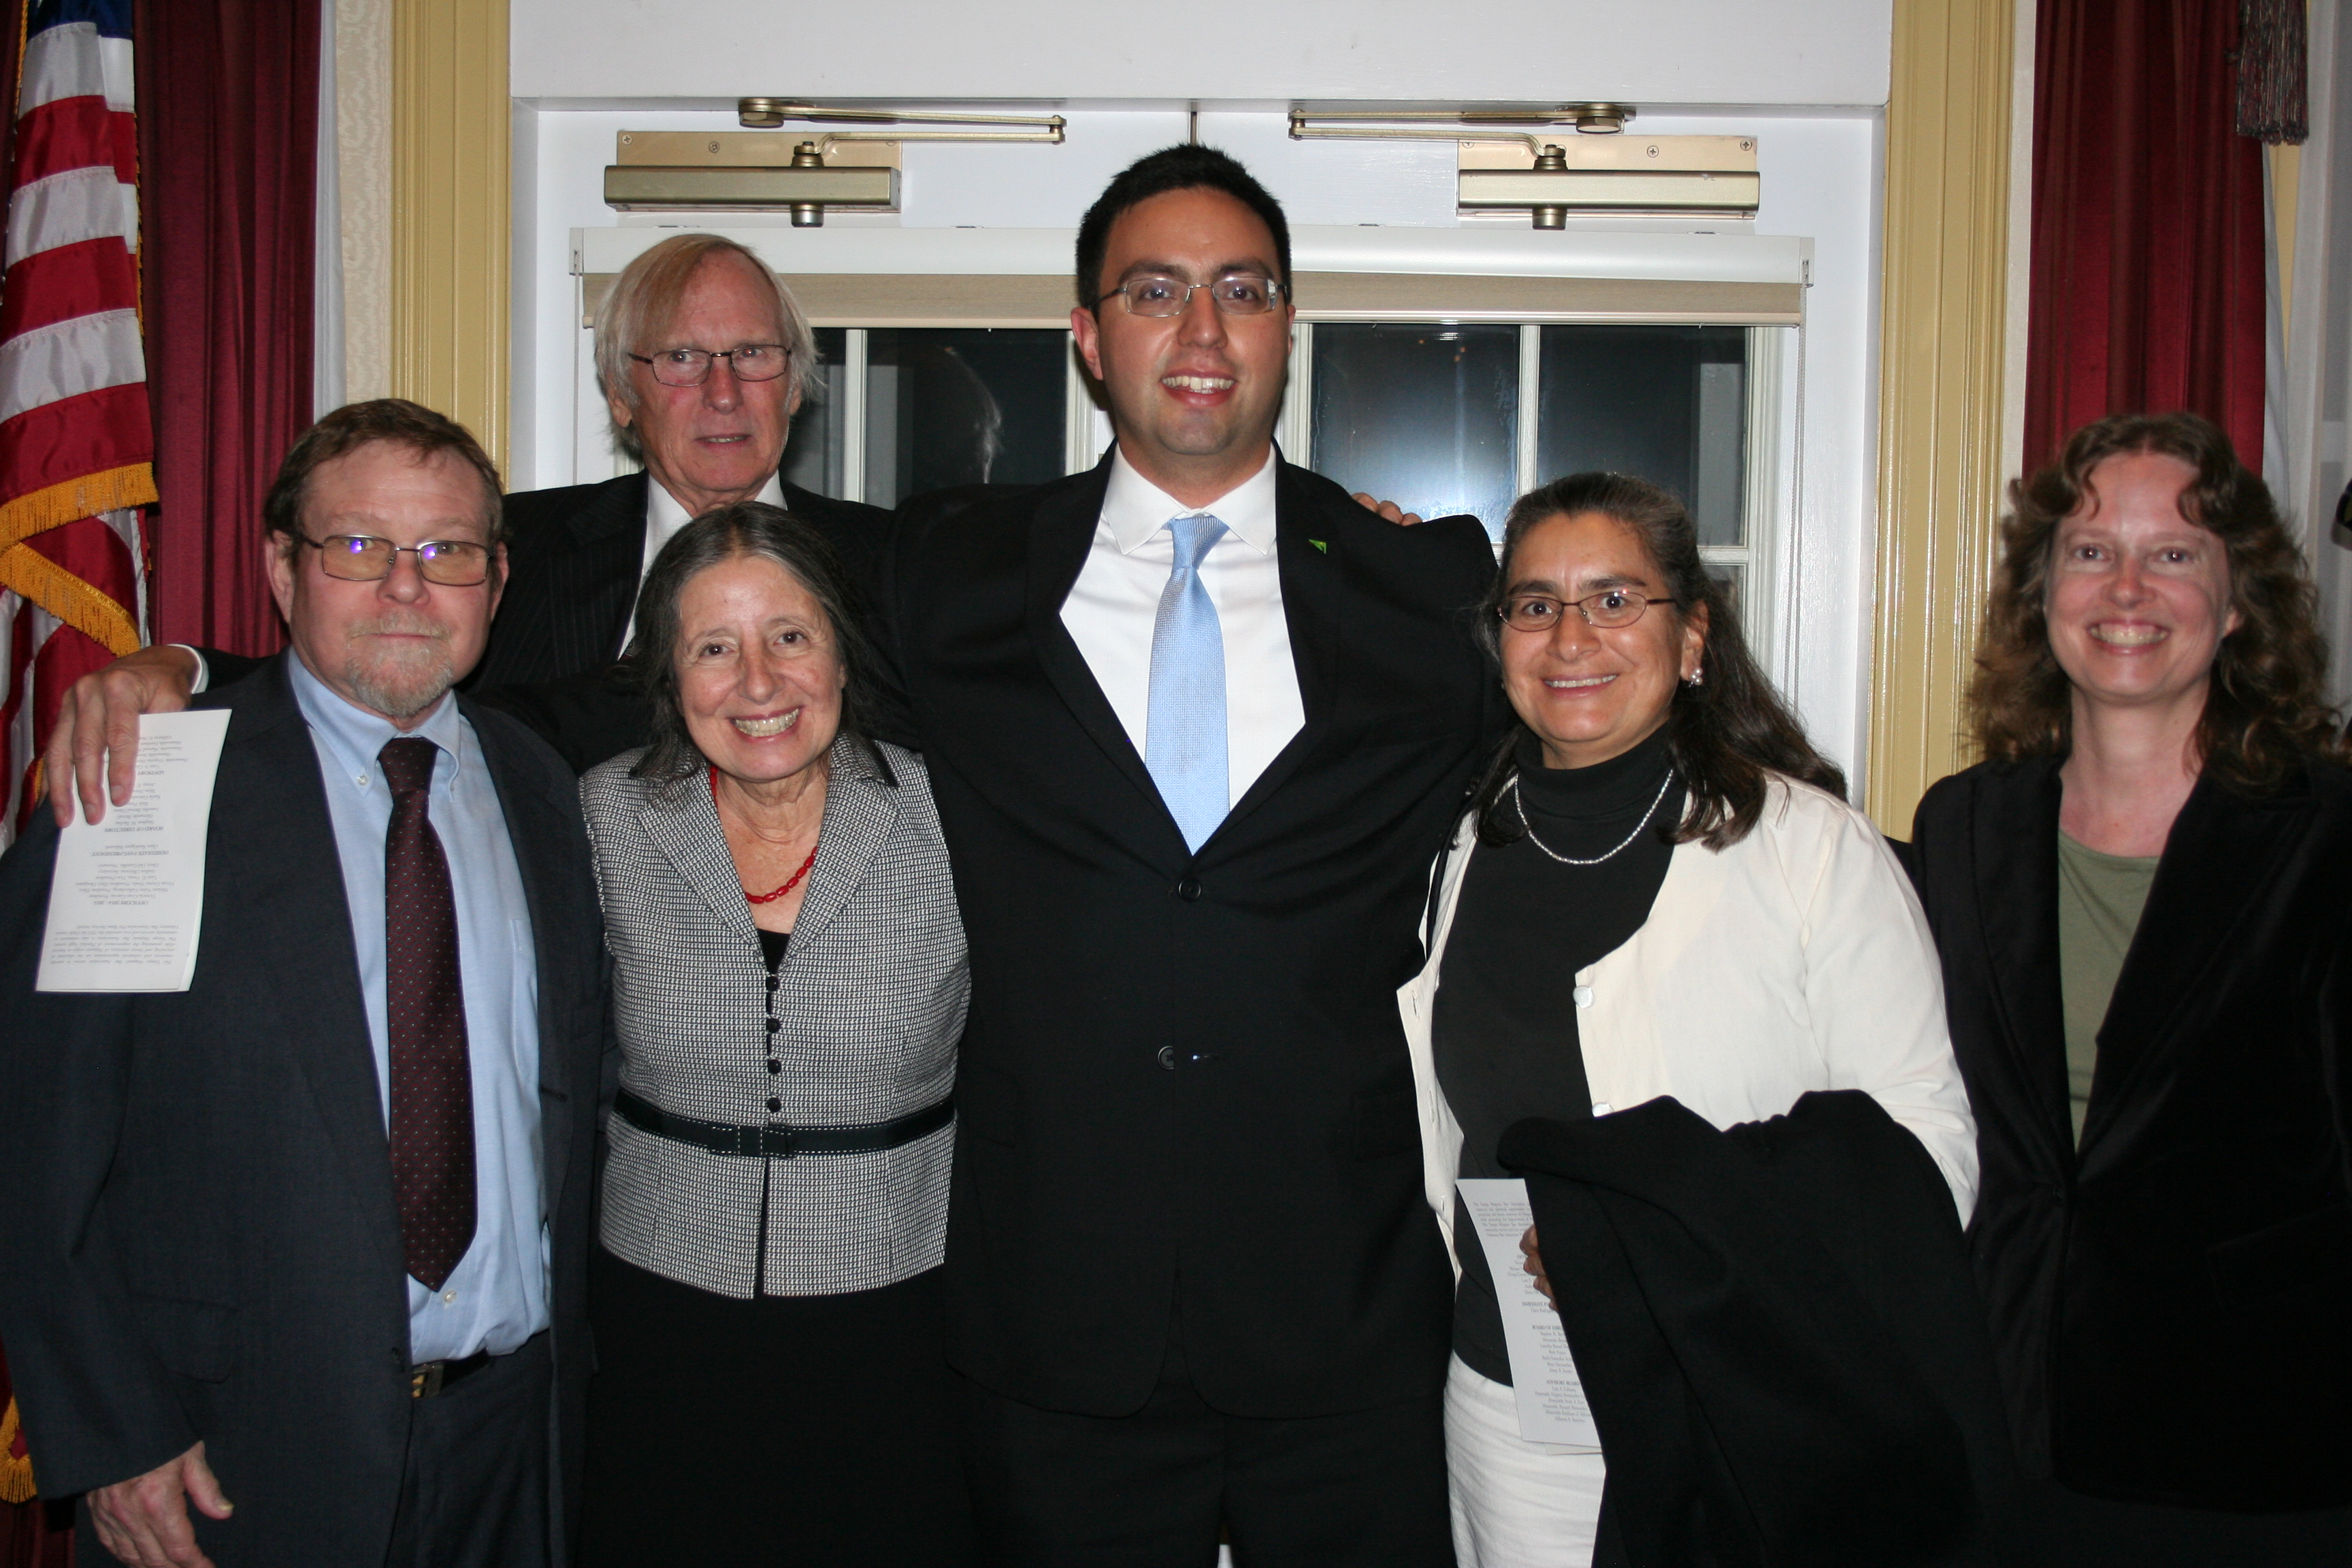 Alum is first undocumented immigrant admitted to Bar